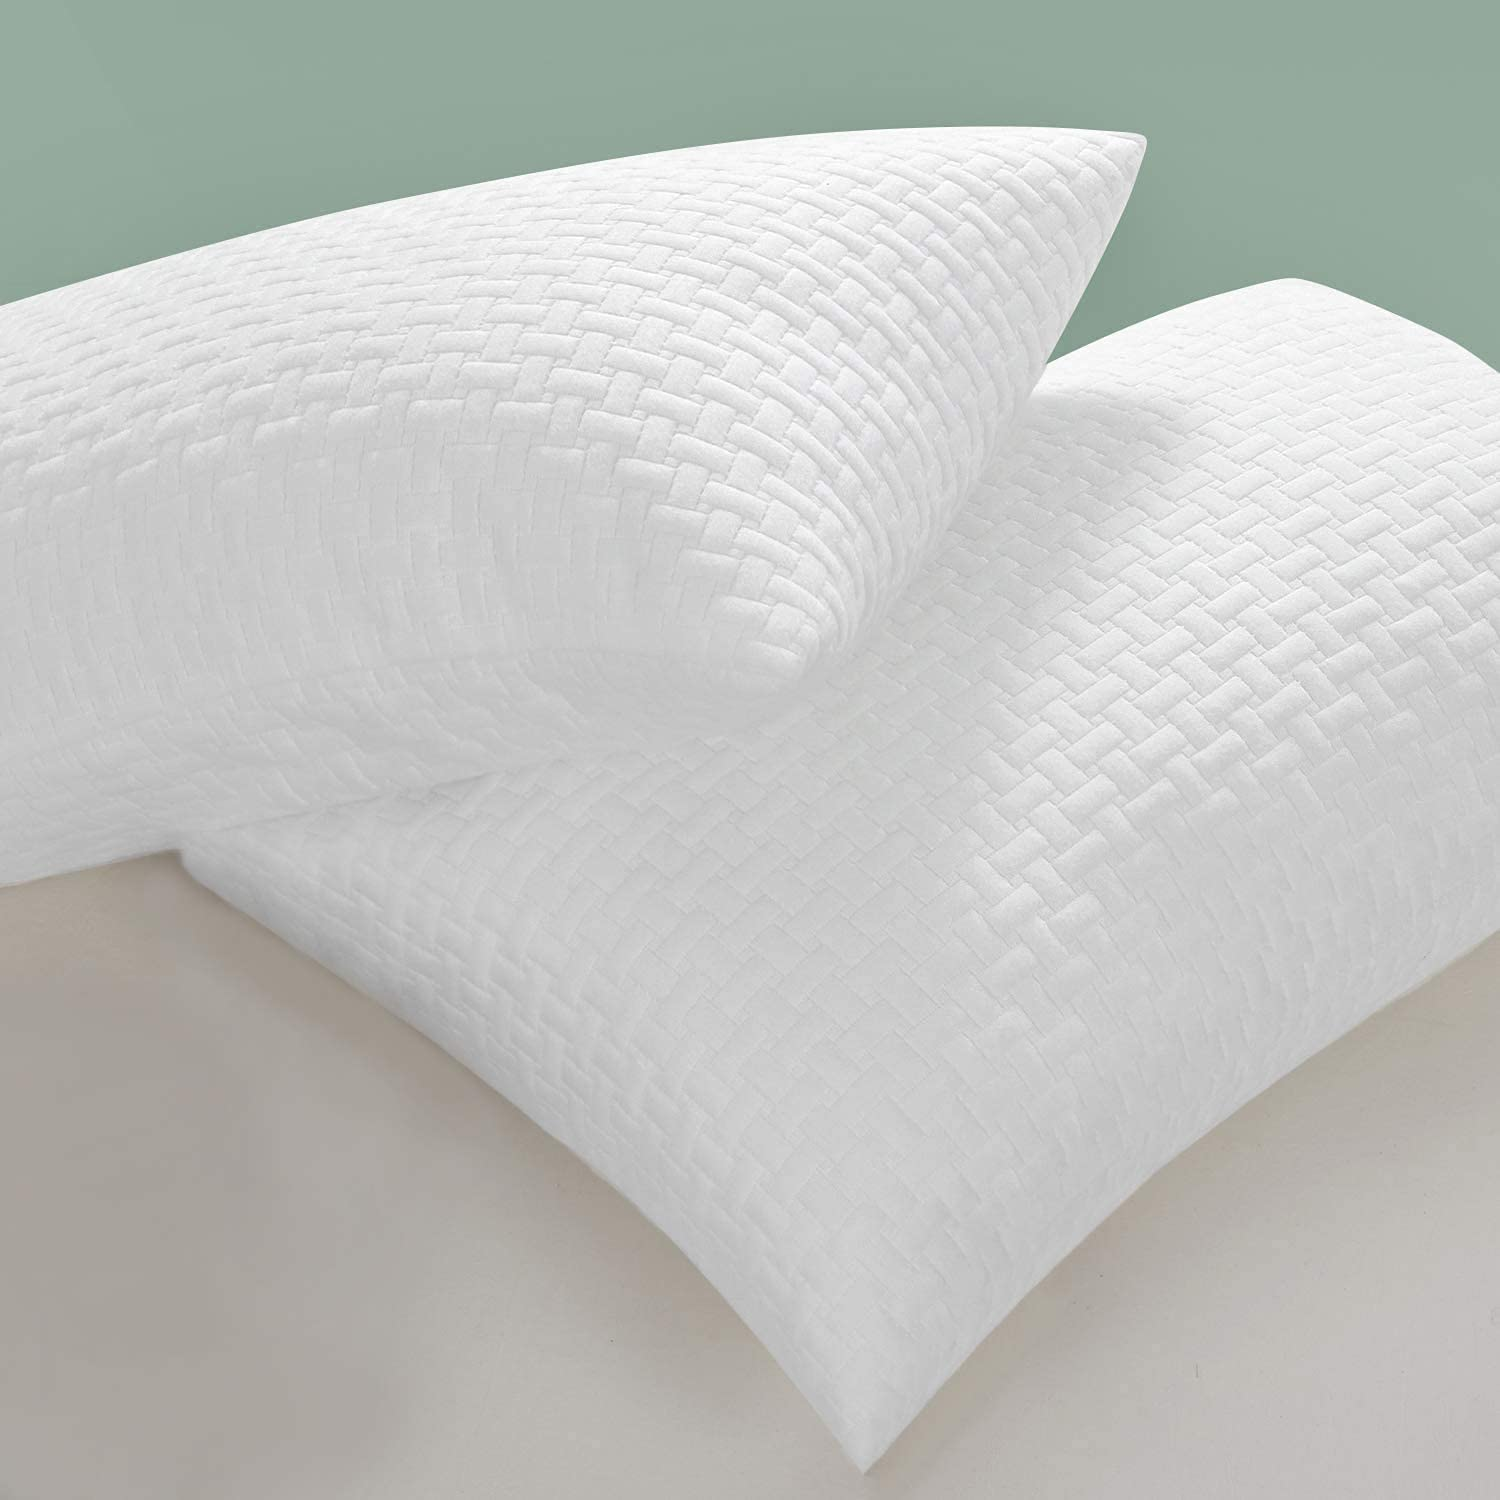 HOMBYS Never Go Flat Bamboo Shredded 2 Pack Pillows Popular Inventory cleanup selling sale brand Foam Memory